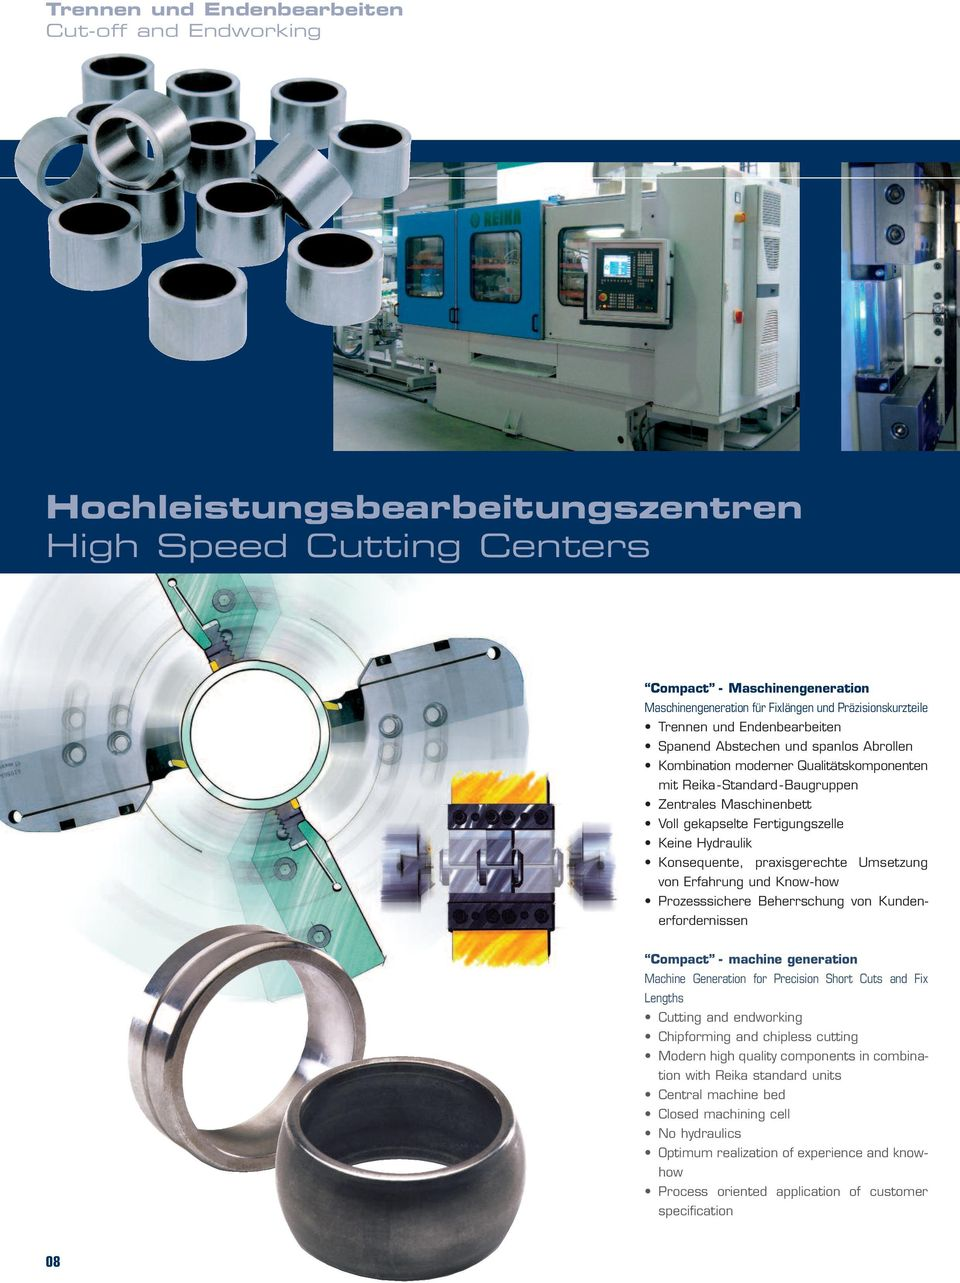 Keine Hydraulik Konsequente, praxisgerechte Umsetzung von Erfahrung und Know-how Prozesssichere Beherrschung von Kunden - erfordernissen Compact - machine generation Machine Generation for Precision